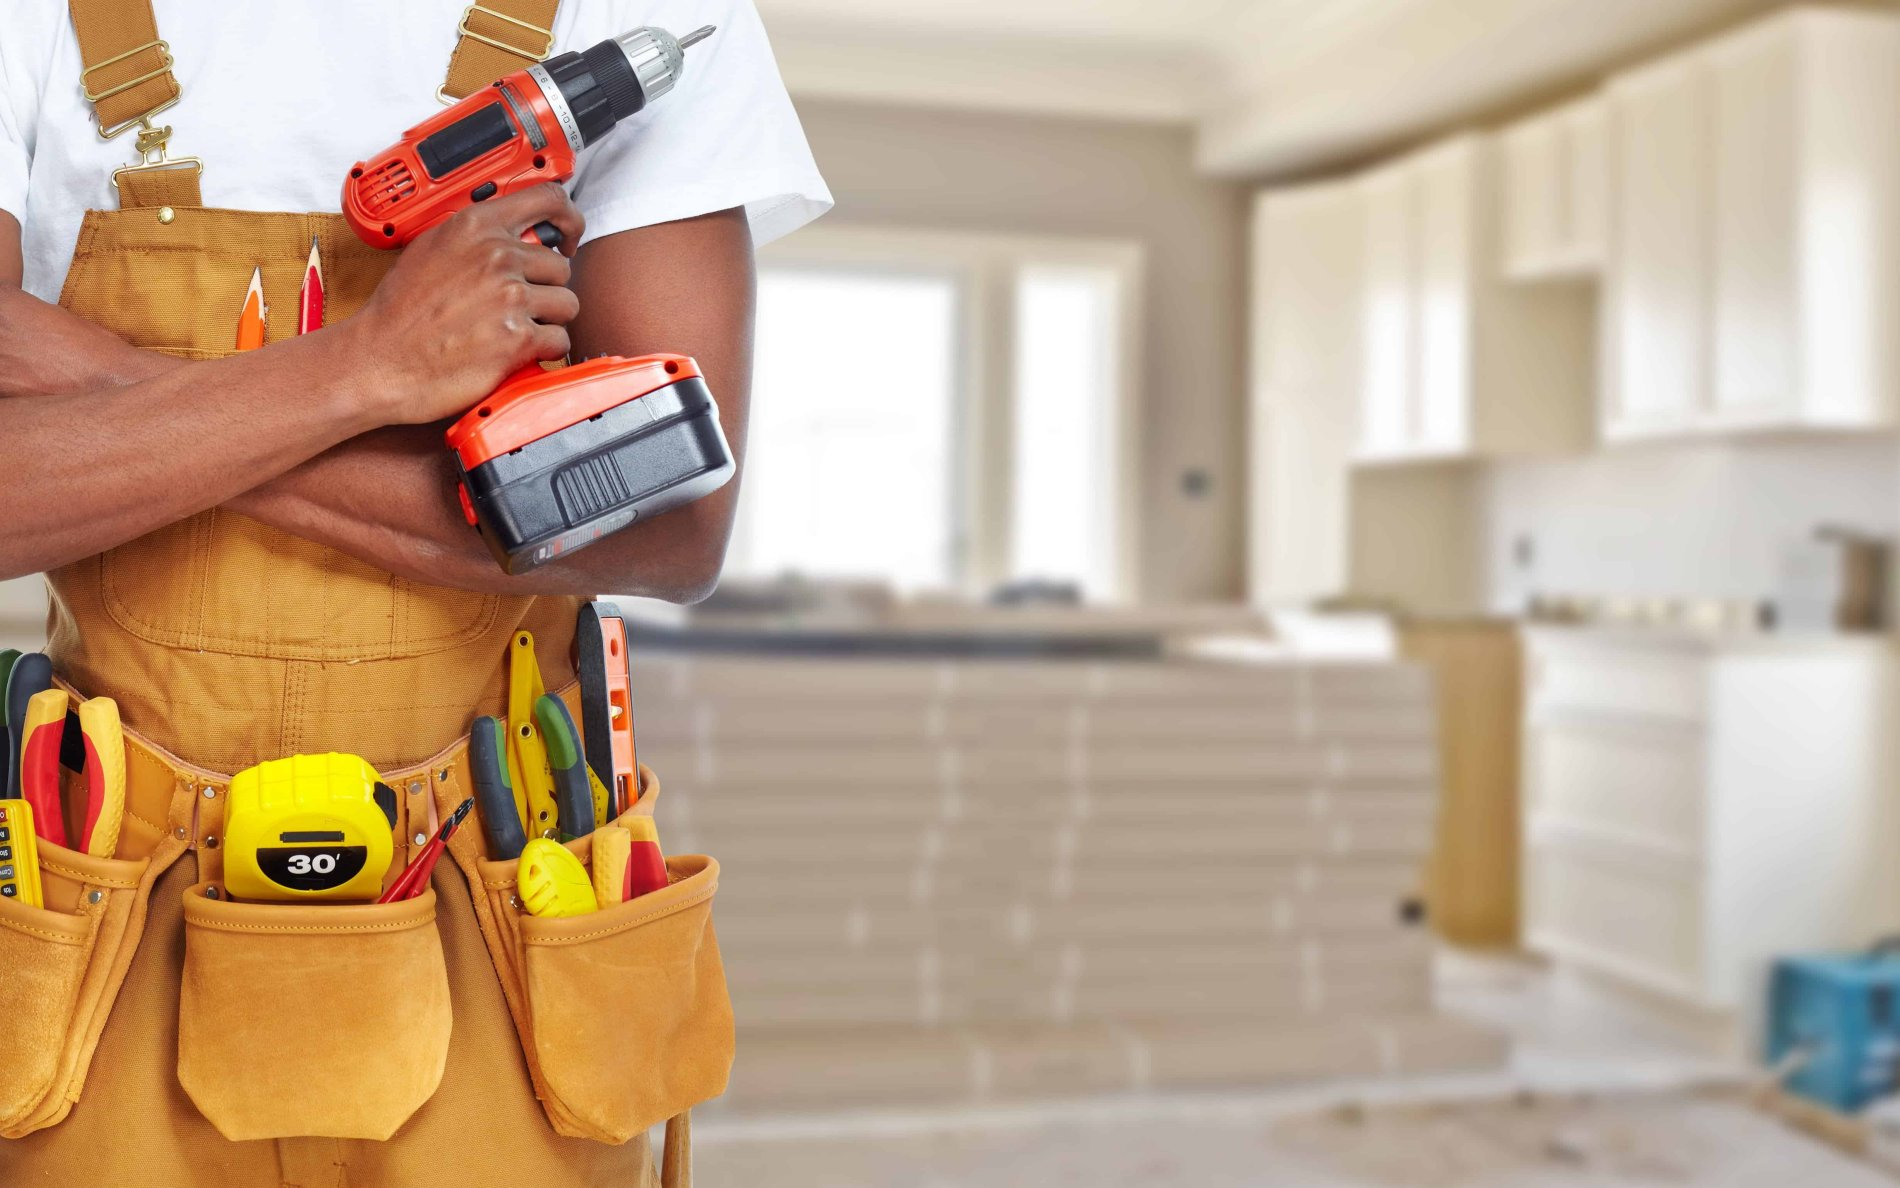 Handyman Services in Kansas City, Handyman Services in Springfield, Handyman Services in St. Louis and Handyman Services in Independence